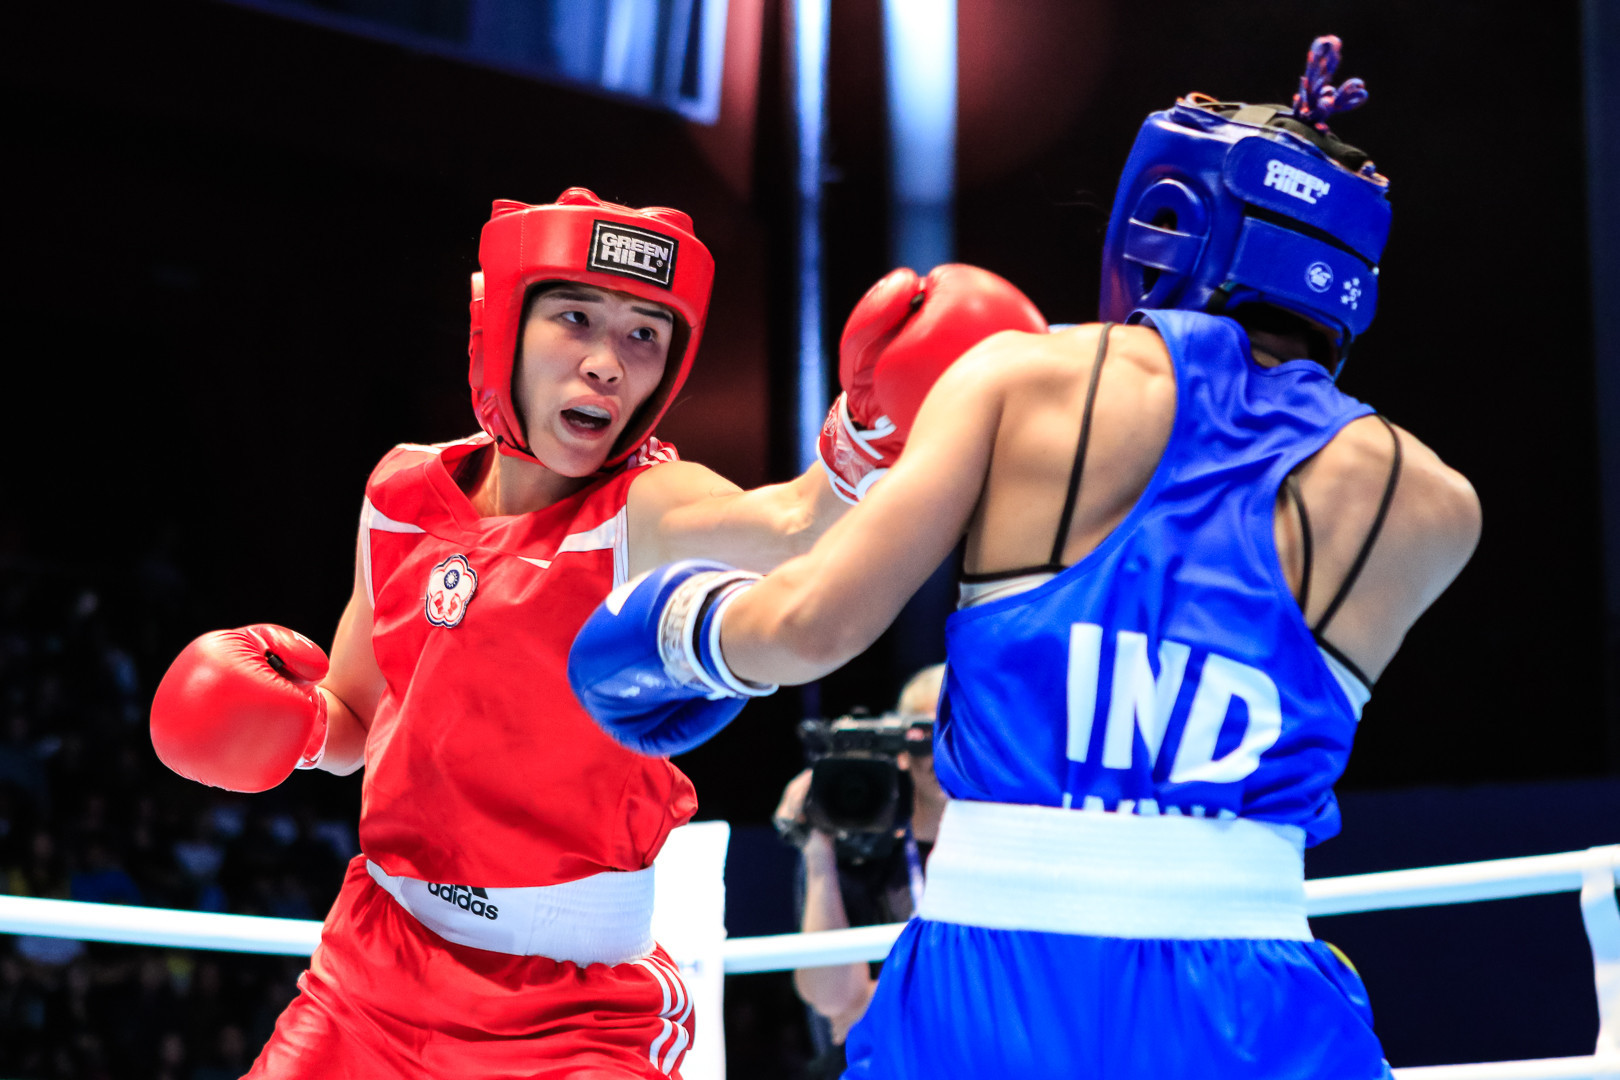 Huang Hsiao-Wen of Chinese Taipei overwhelmed Jamuna Boro of India 5-0 to reach the bantamweight final ©AIBA